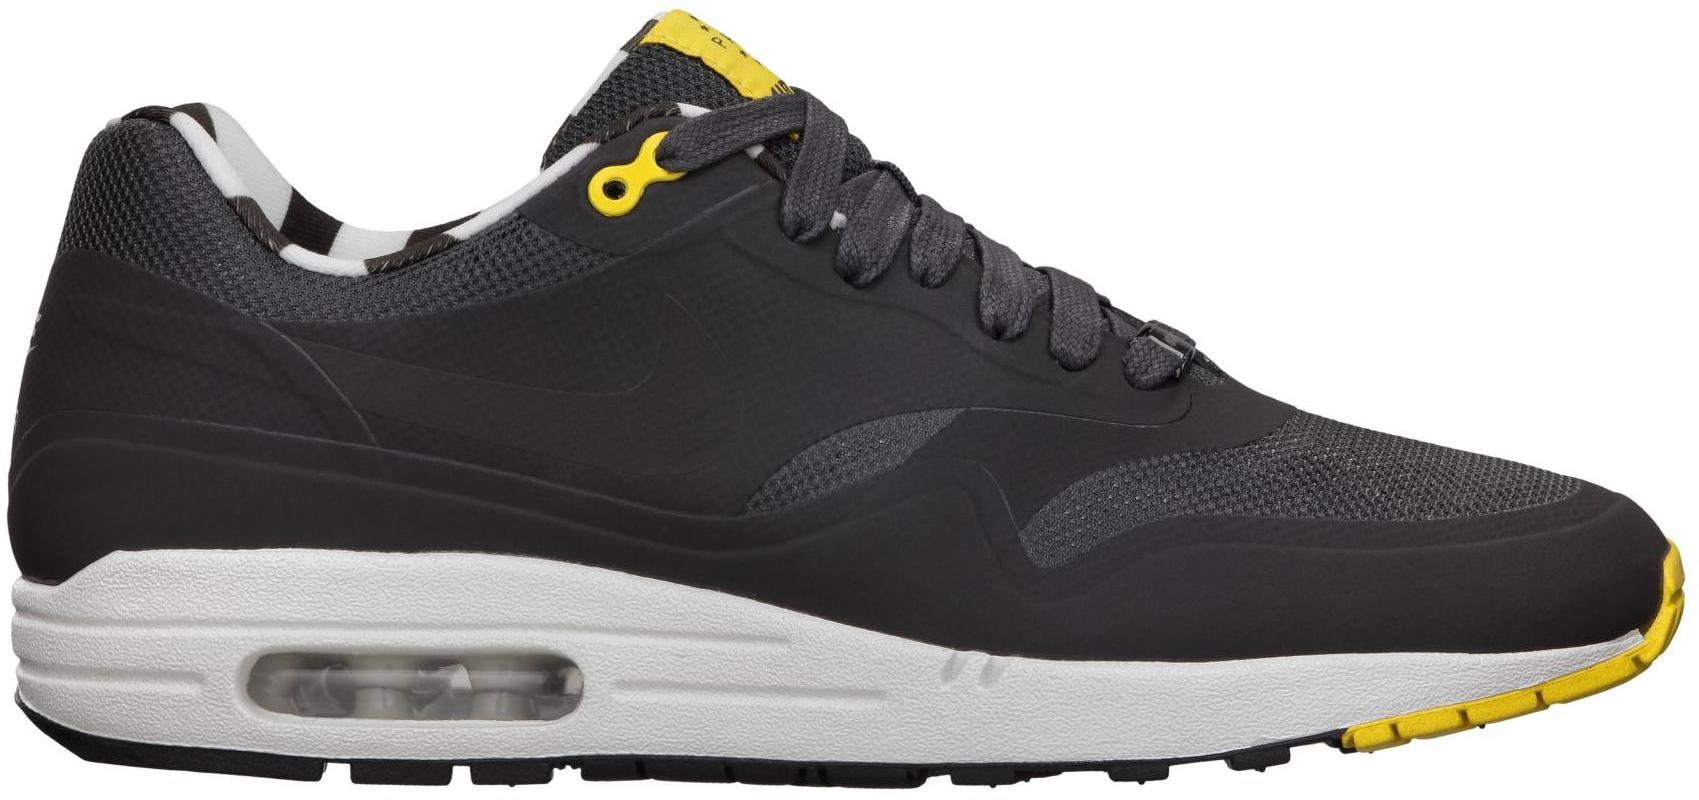 Nike Air Max Home Turf Collection